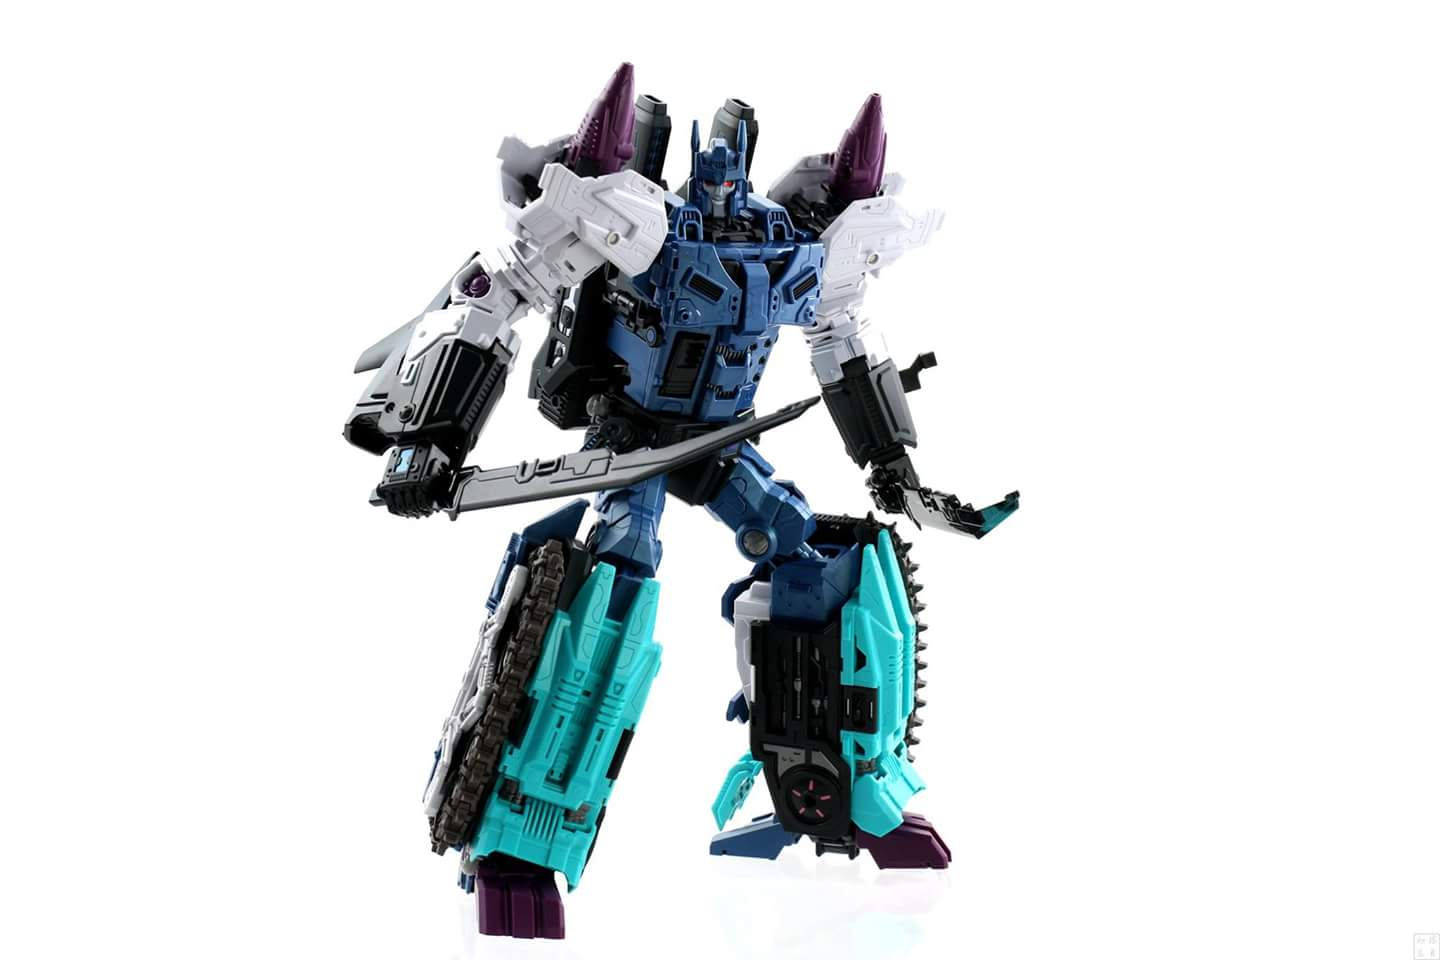 [Mastermind Creations] Produit Tiers - R-17 Carnifex - aka Overlord (TF Masterforce) - Page 3 YJSJu7fO